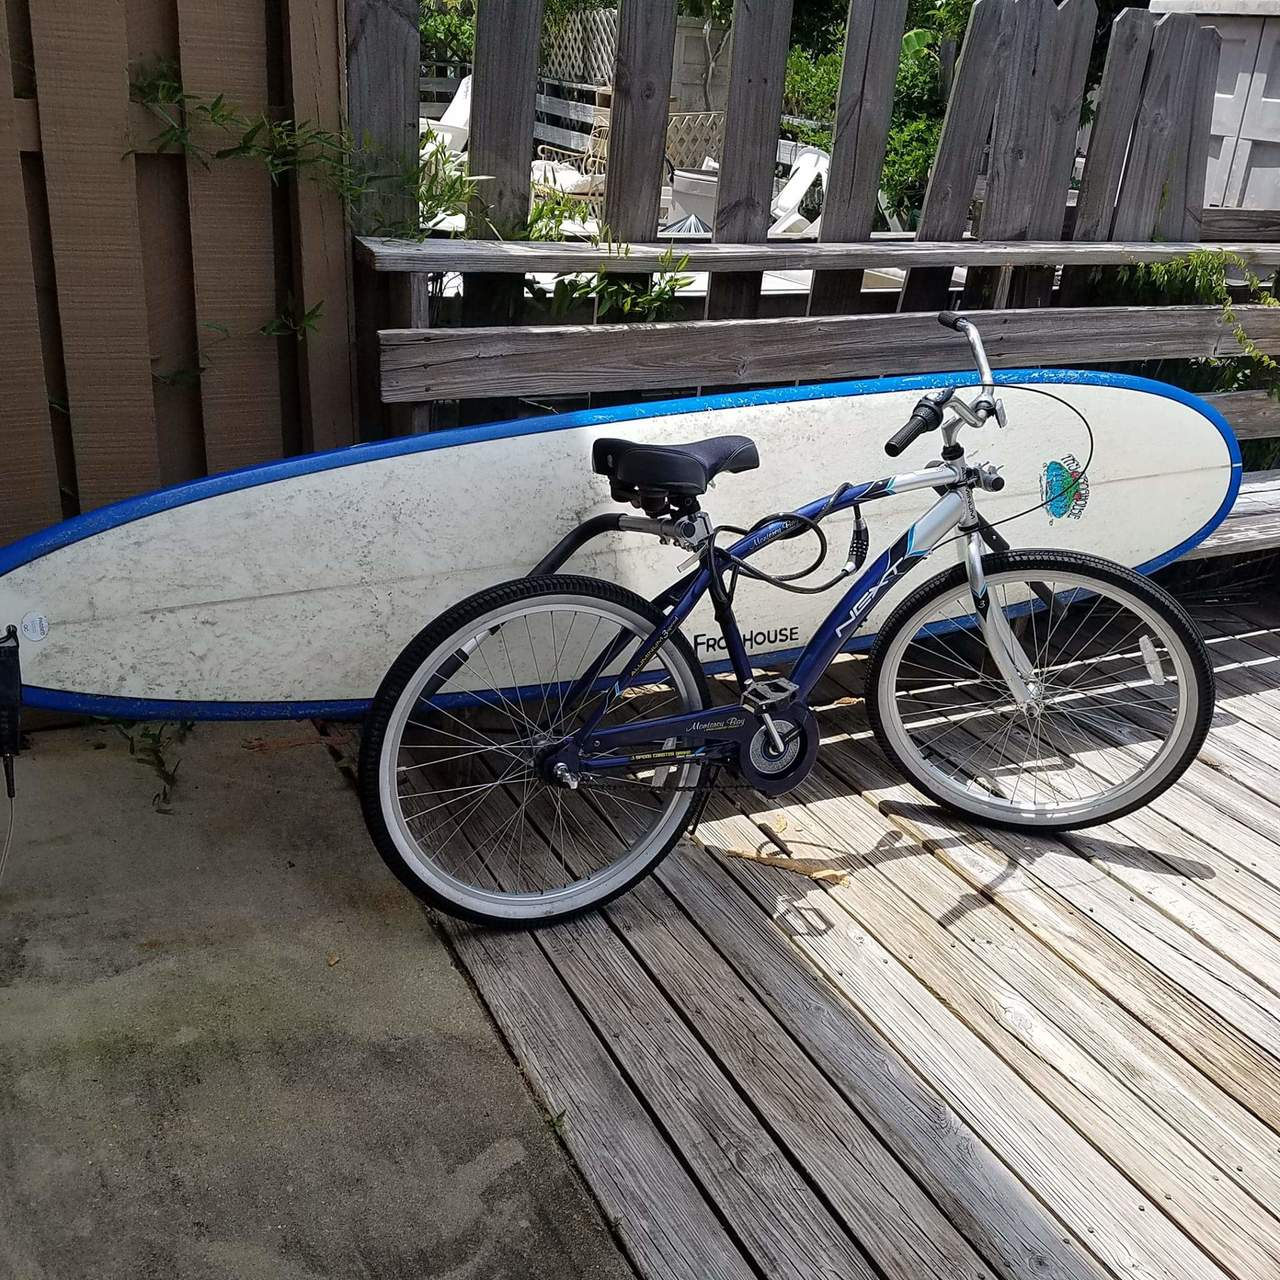 Removable Longboard Surfboard Bike Rack Storeyourboard Com